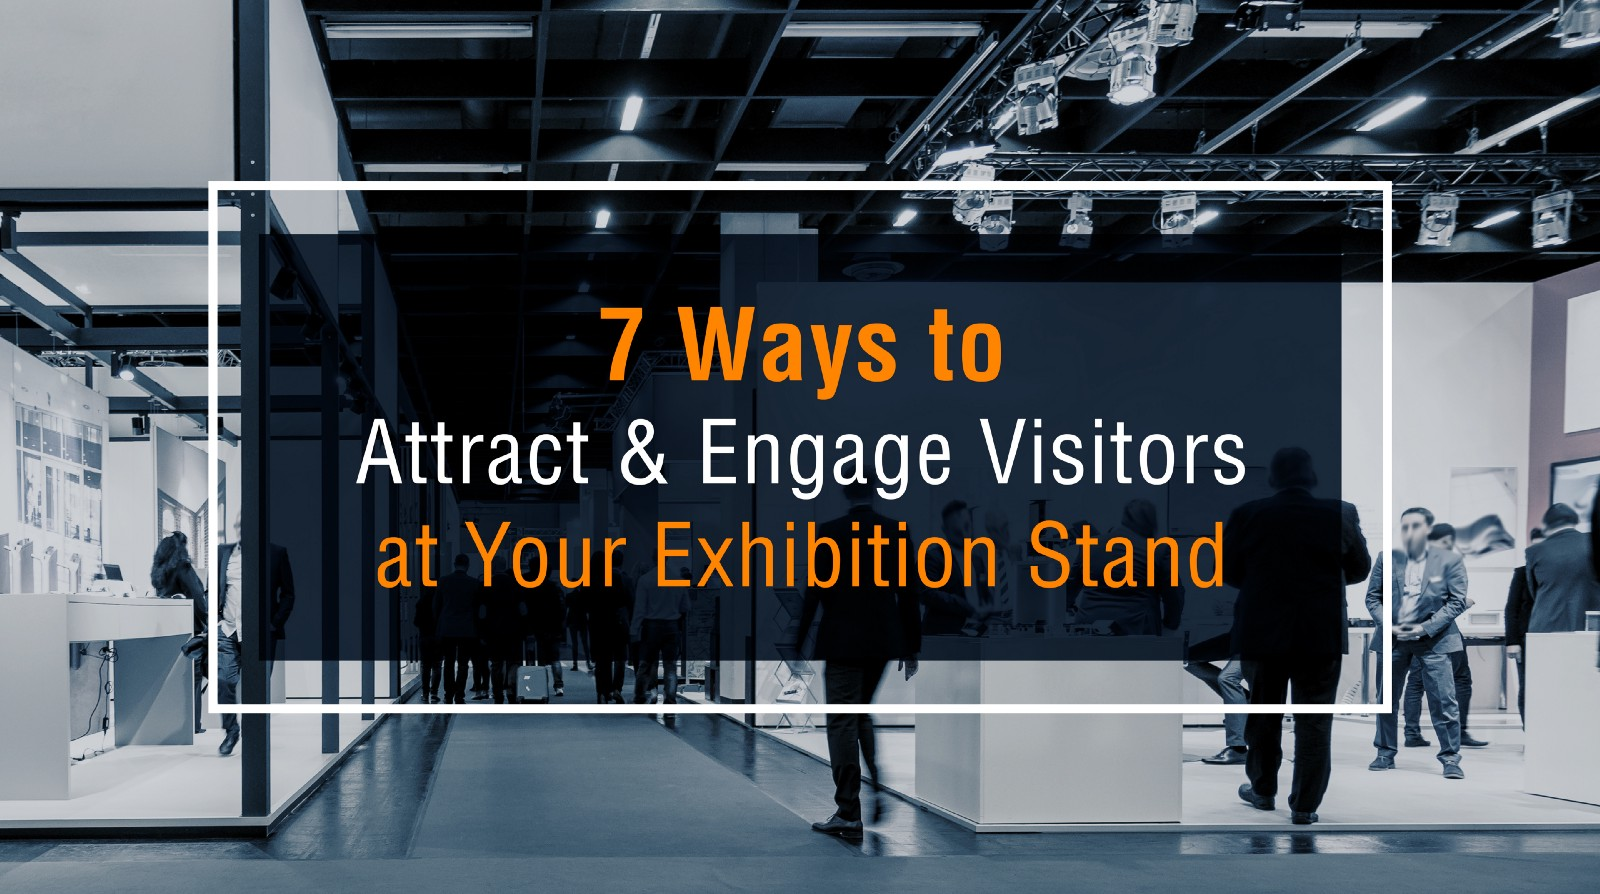 Design Your Exhibition Stand : Ways to attract engage visitors at your exhibition stand